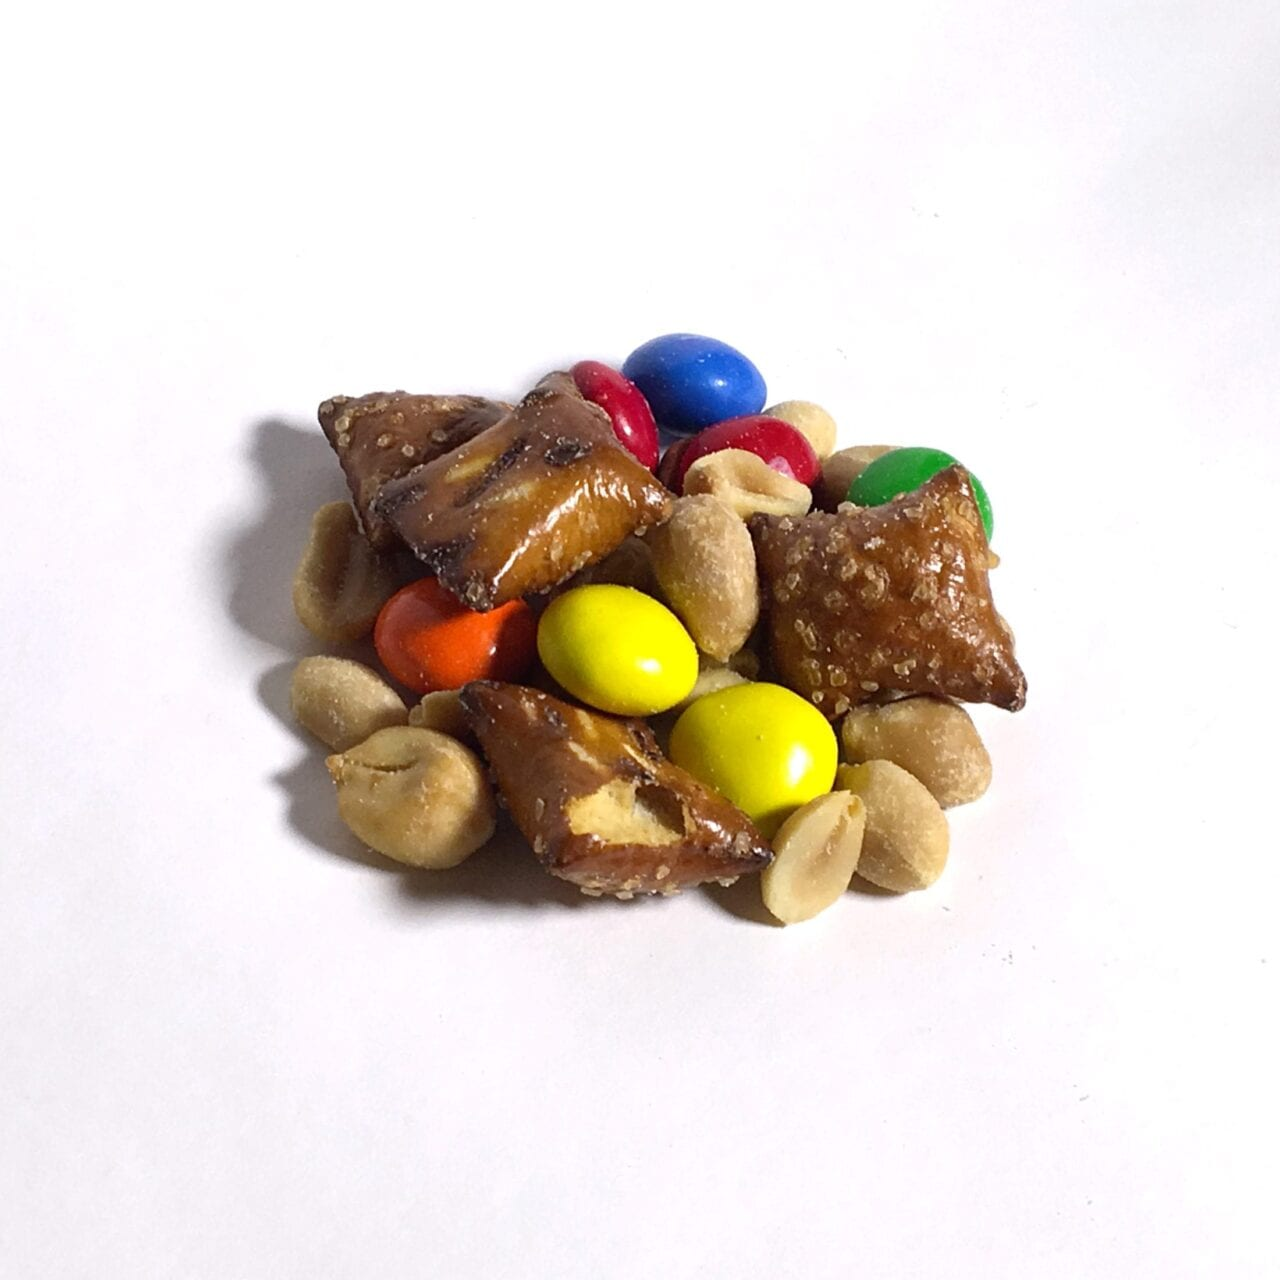 A pile of GORP trail mix including nuts and m&ms.